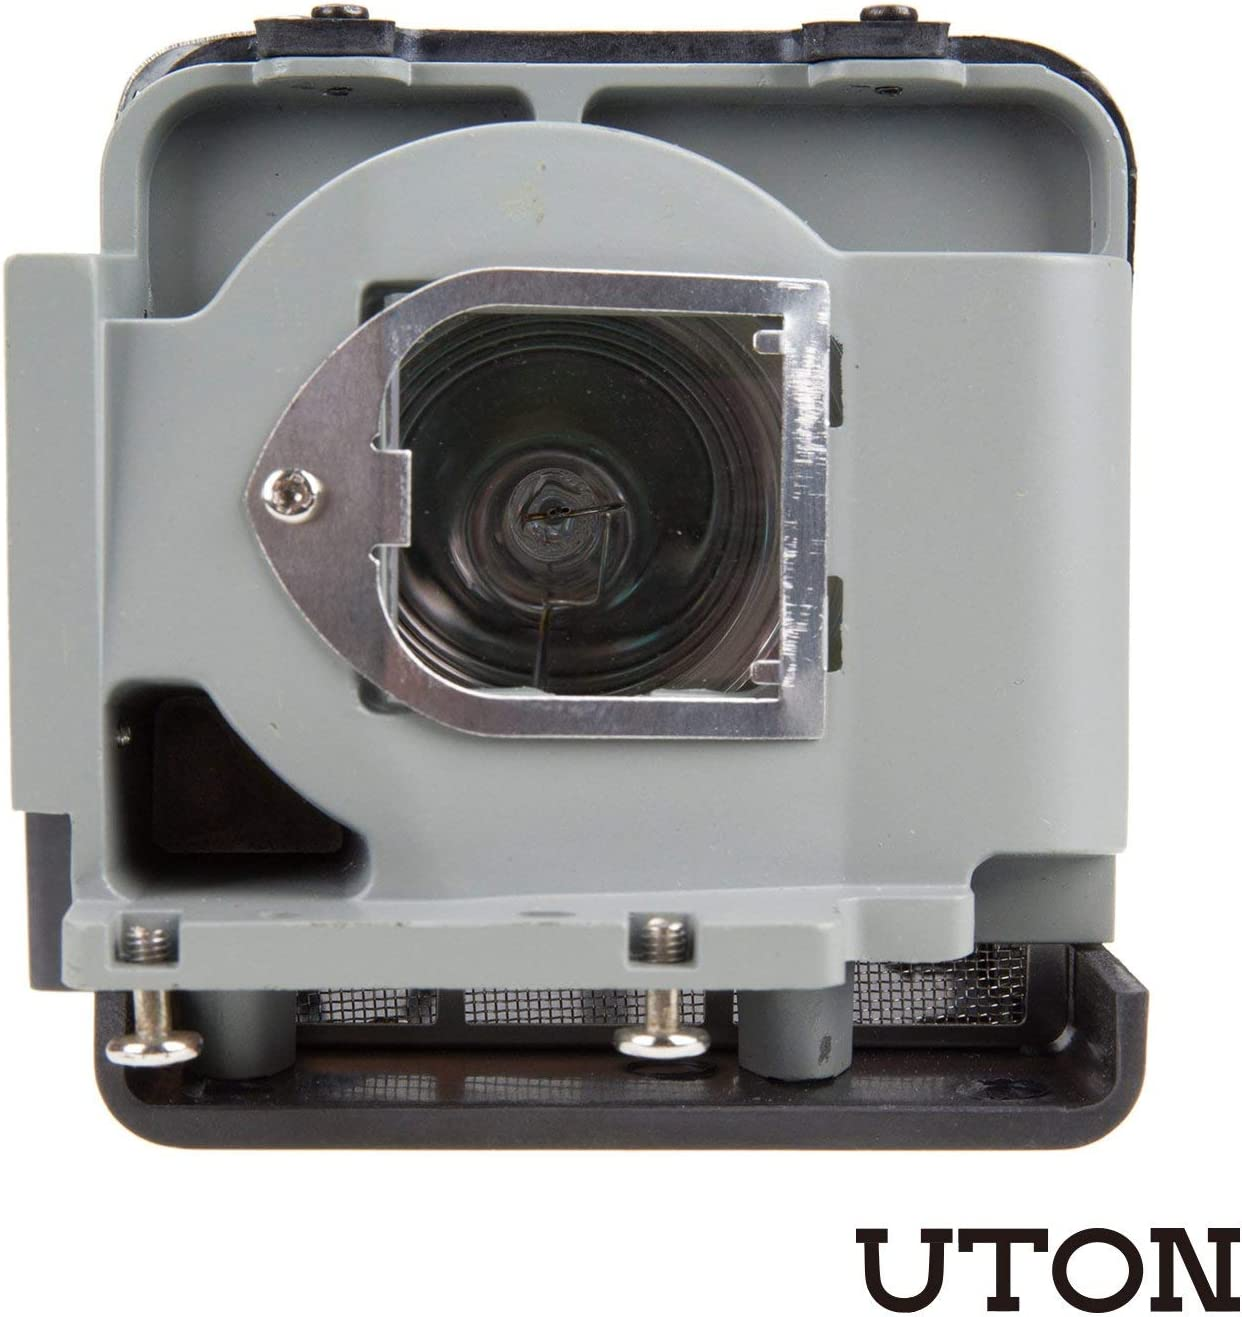 Uton VLT-XD560LP Projector Lamp with Housing Replacement for Mitsubishi XD550U XD560U XD360-EST WD380-EST WD570 WD380U WD380U-EST WD385U-EST Projector